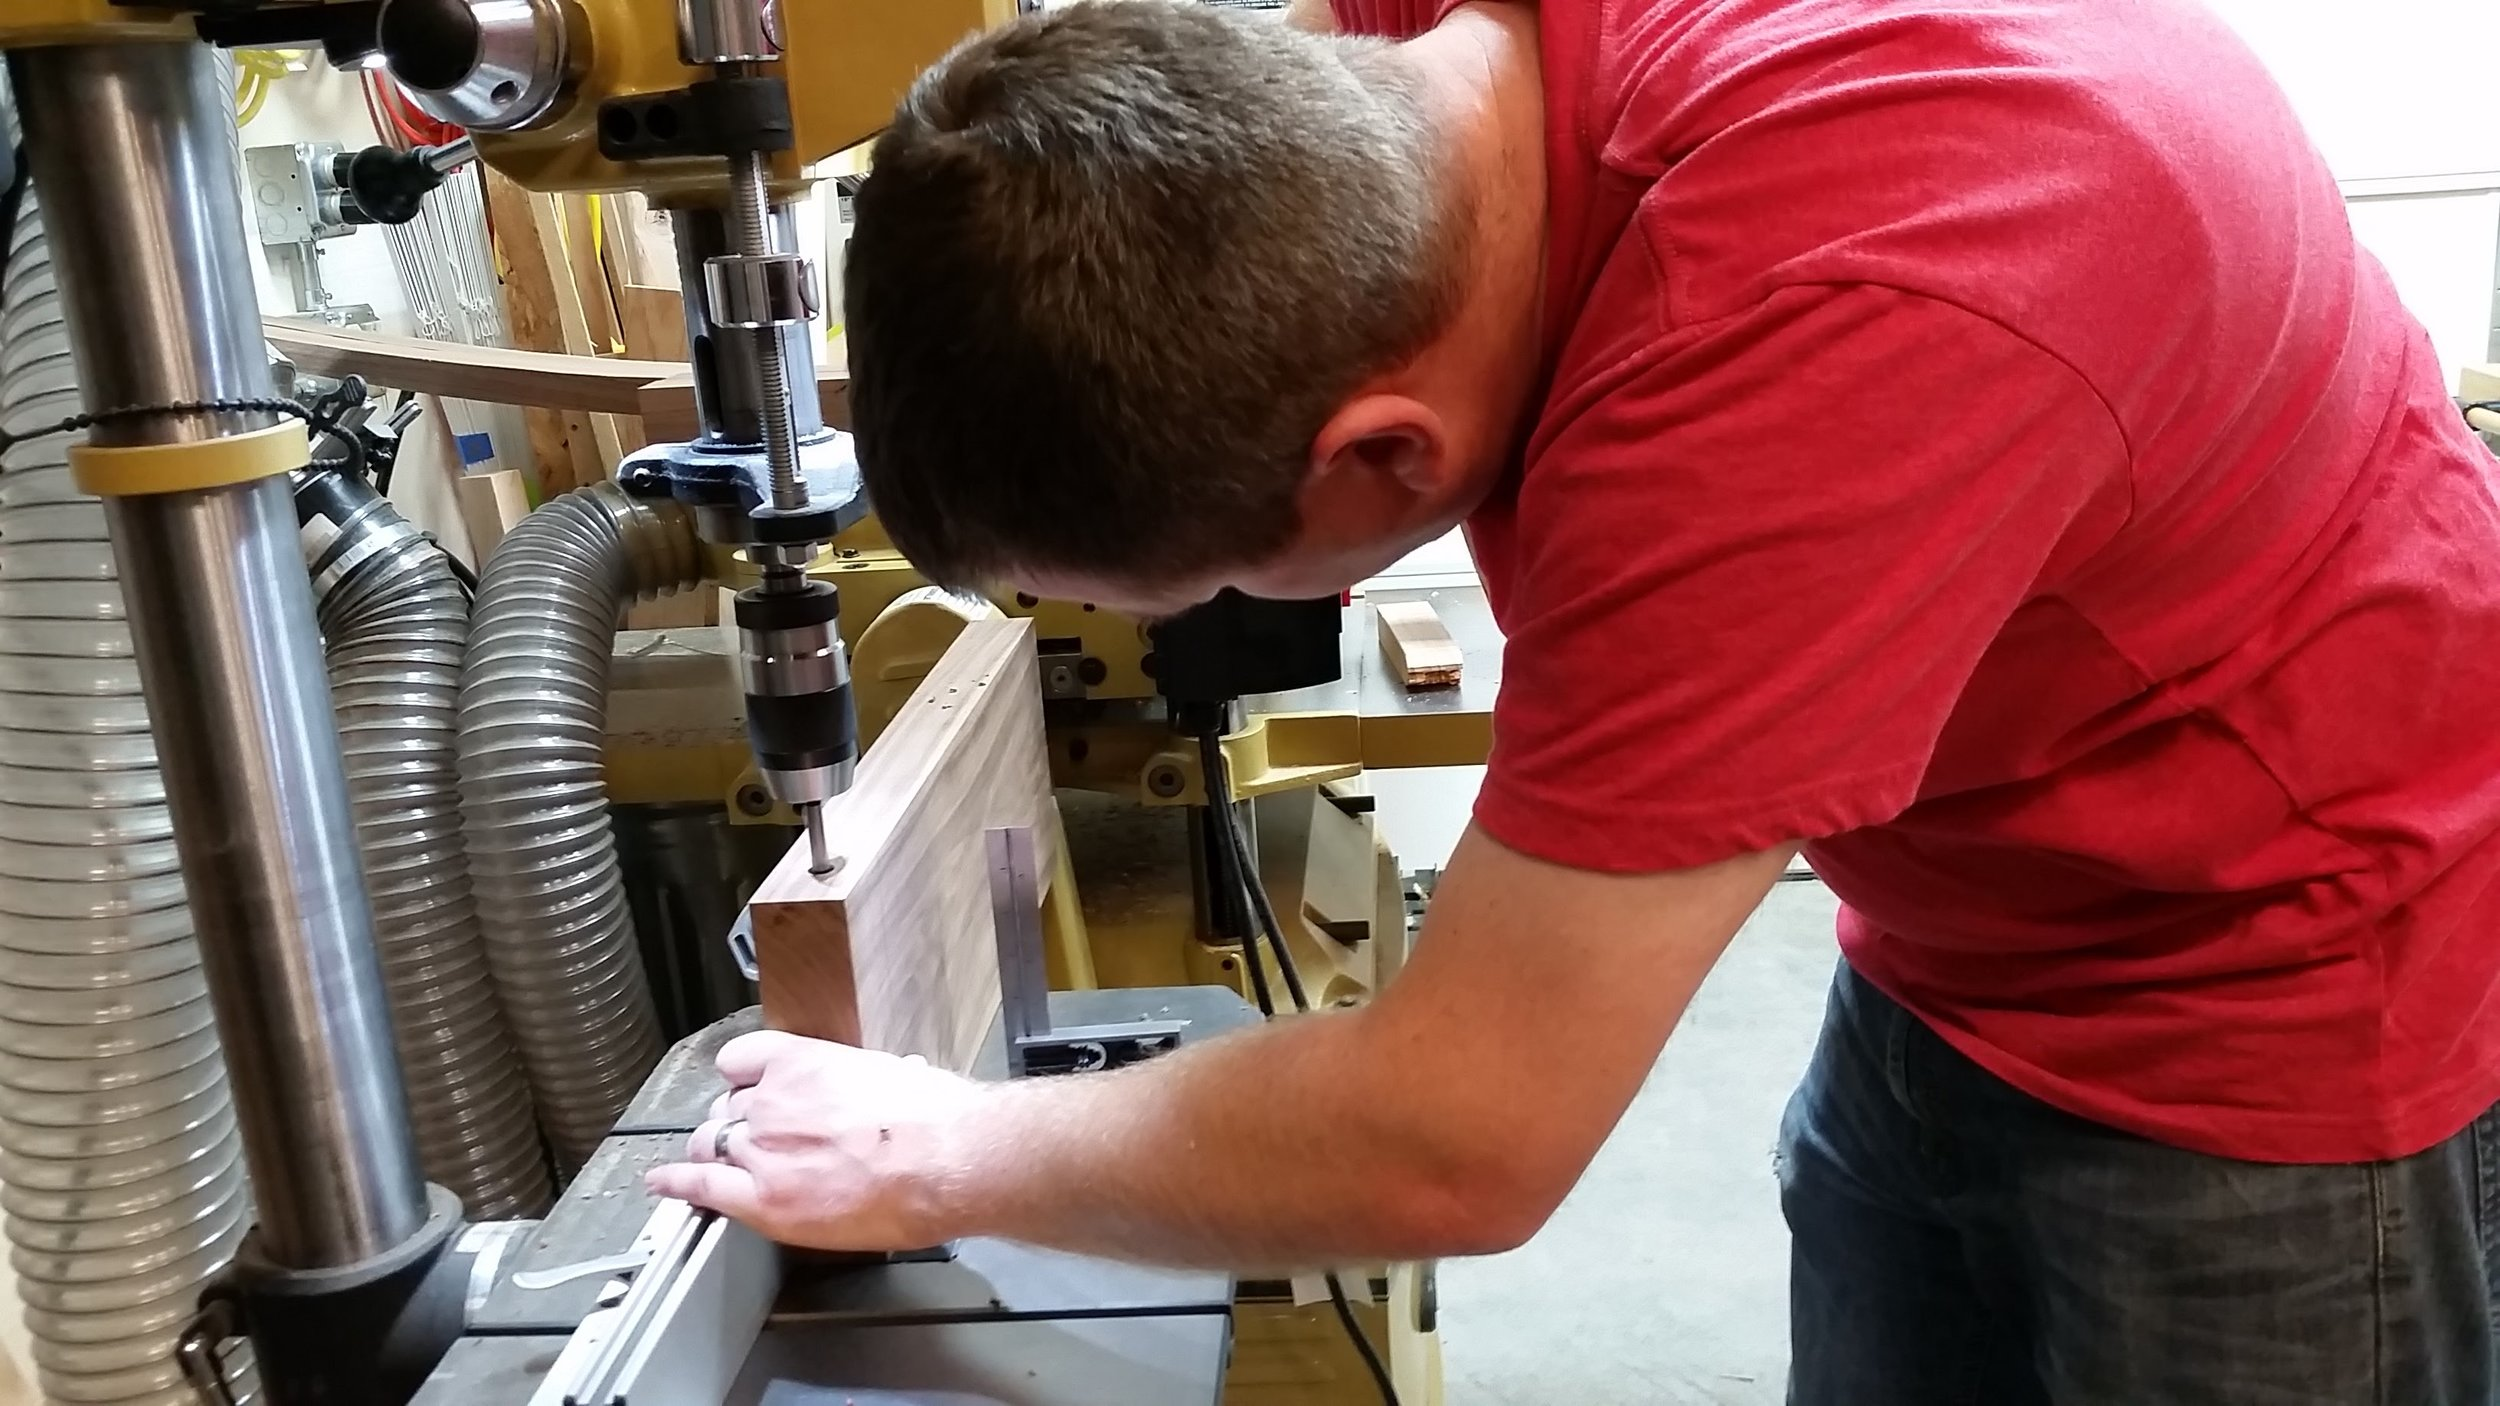 Drilling dowel holes in the edge of one of the seat boards.